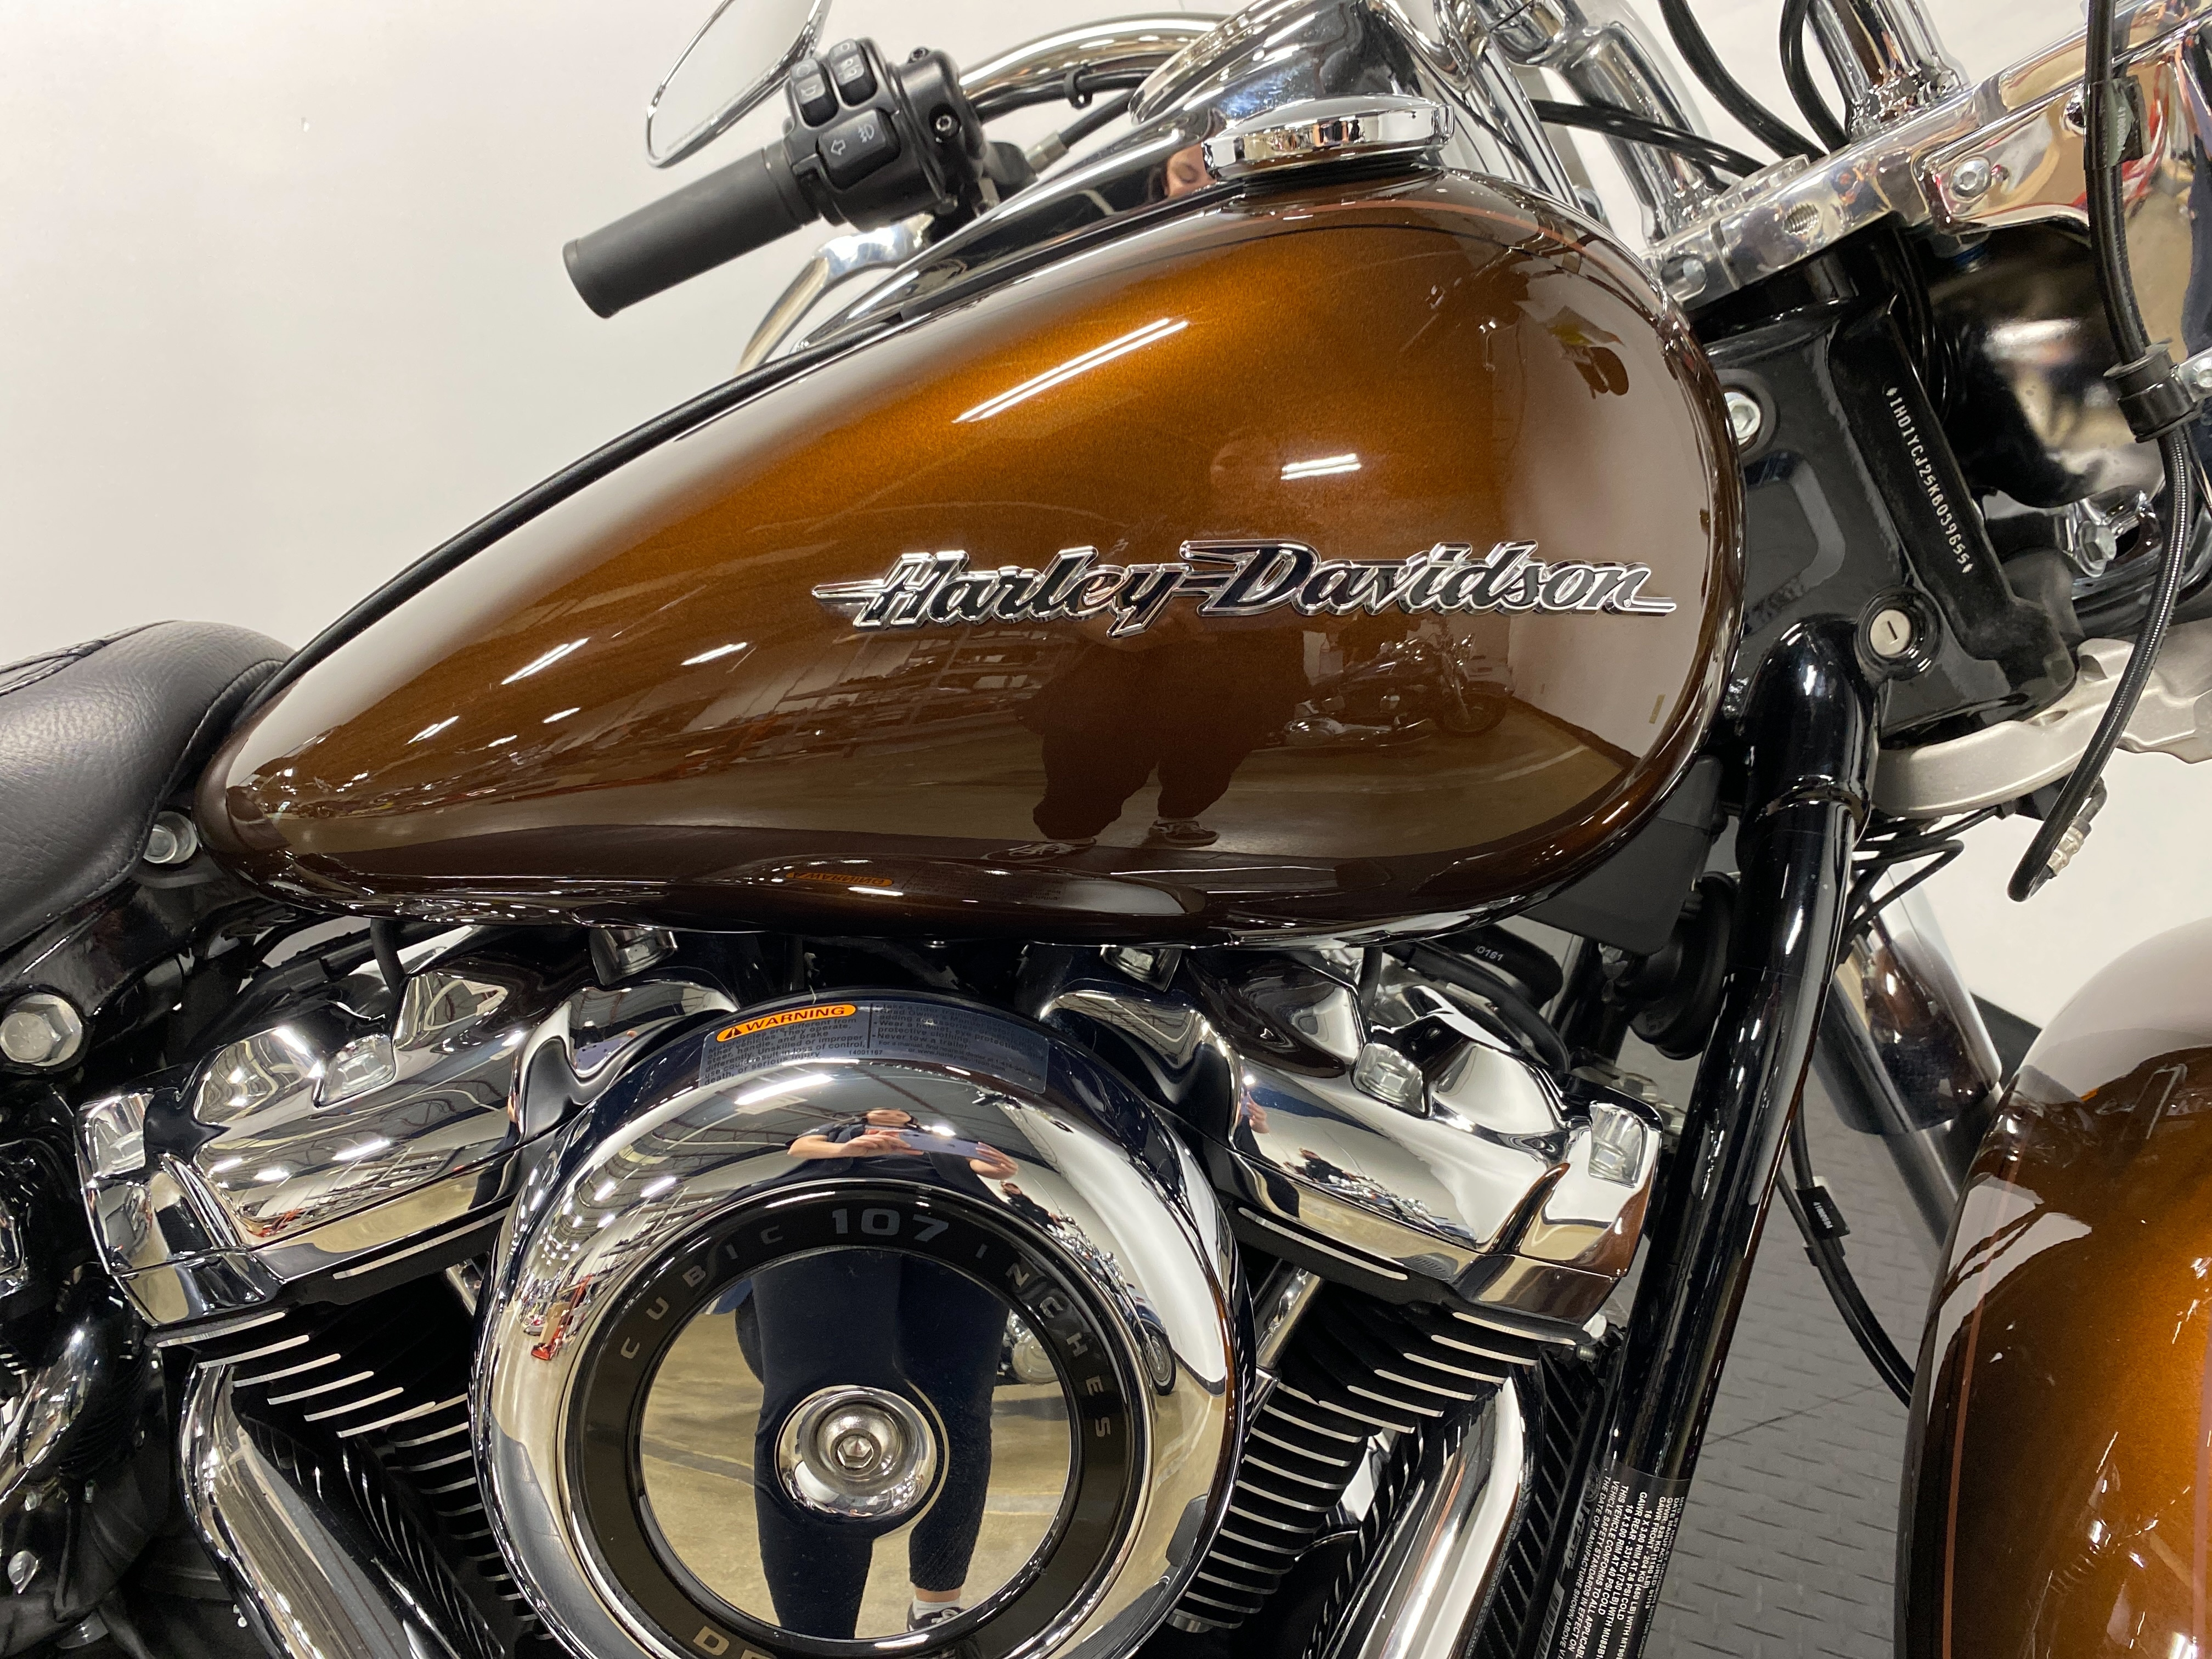 2019 Harley-Davidson Softail Deluxe at Cannonball Harley-Davidson